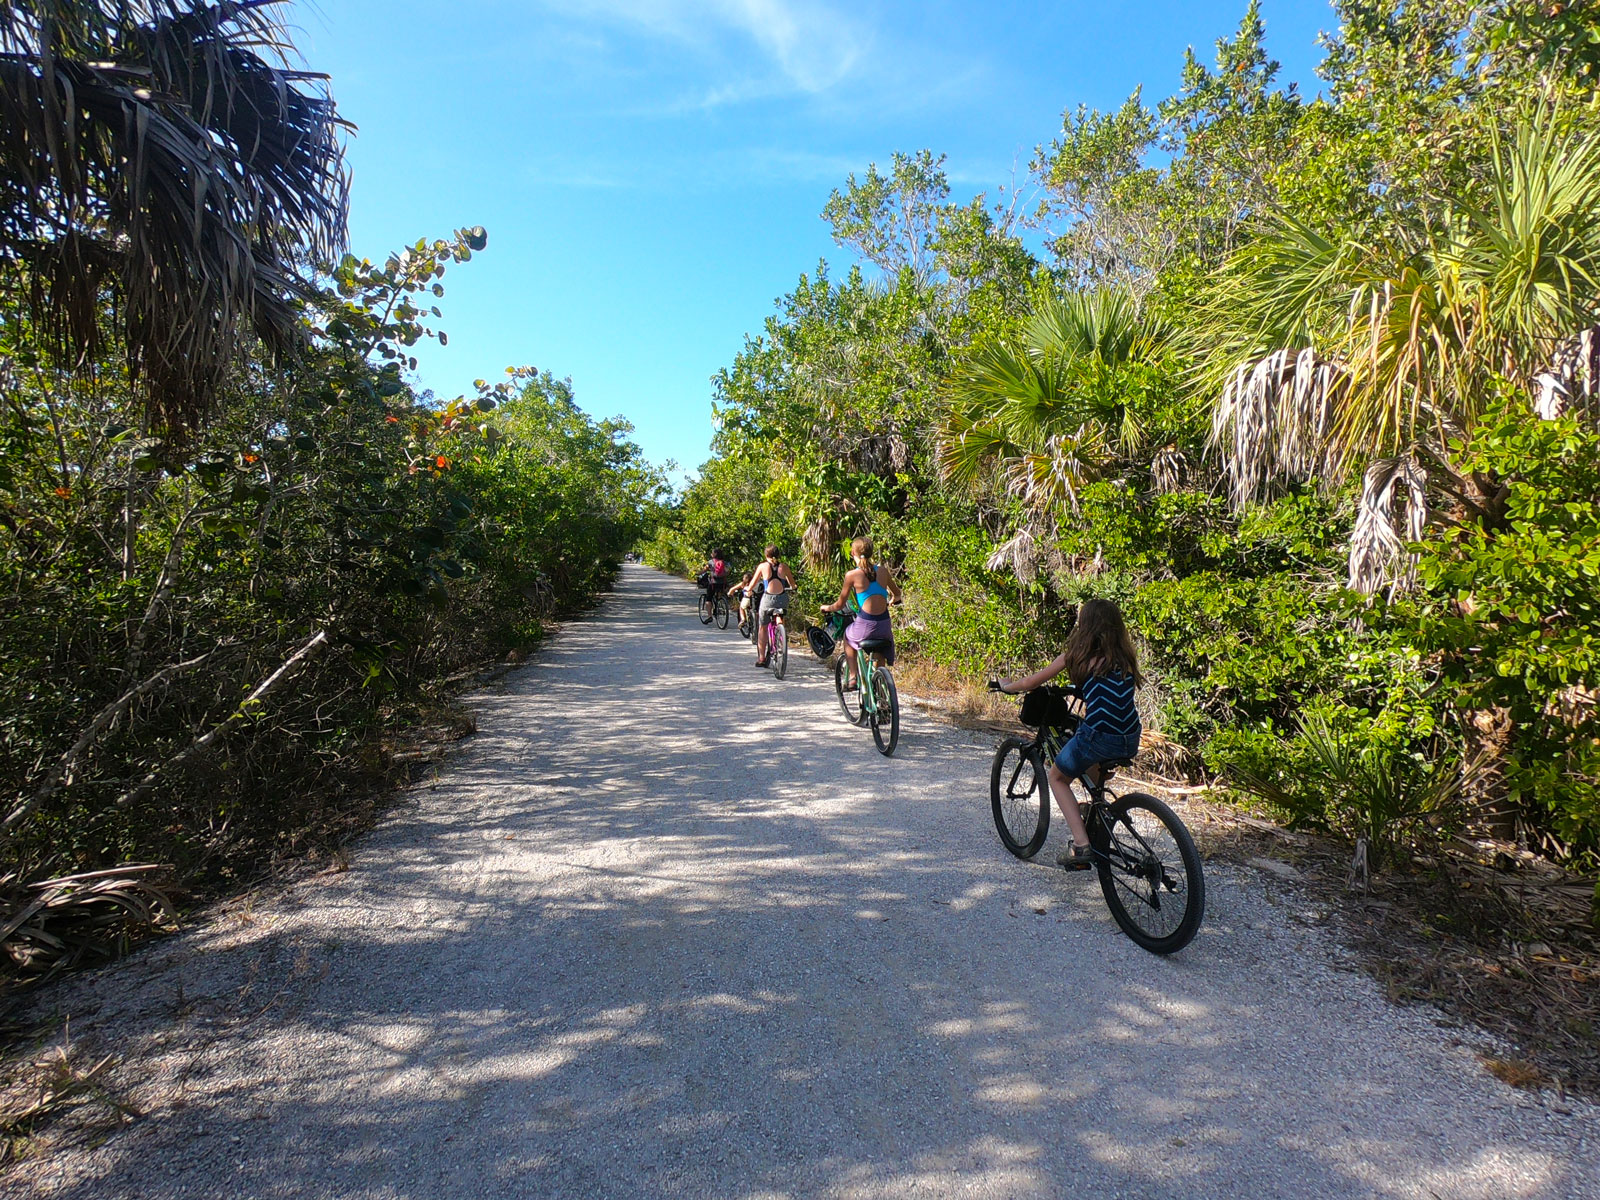 Four people riding bikes single file on Indigo Trail in the J. N. Ding Darling National Wildlife Refuge, Sanibel Island FL